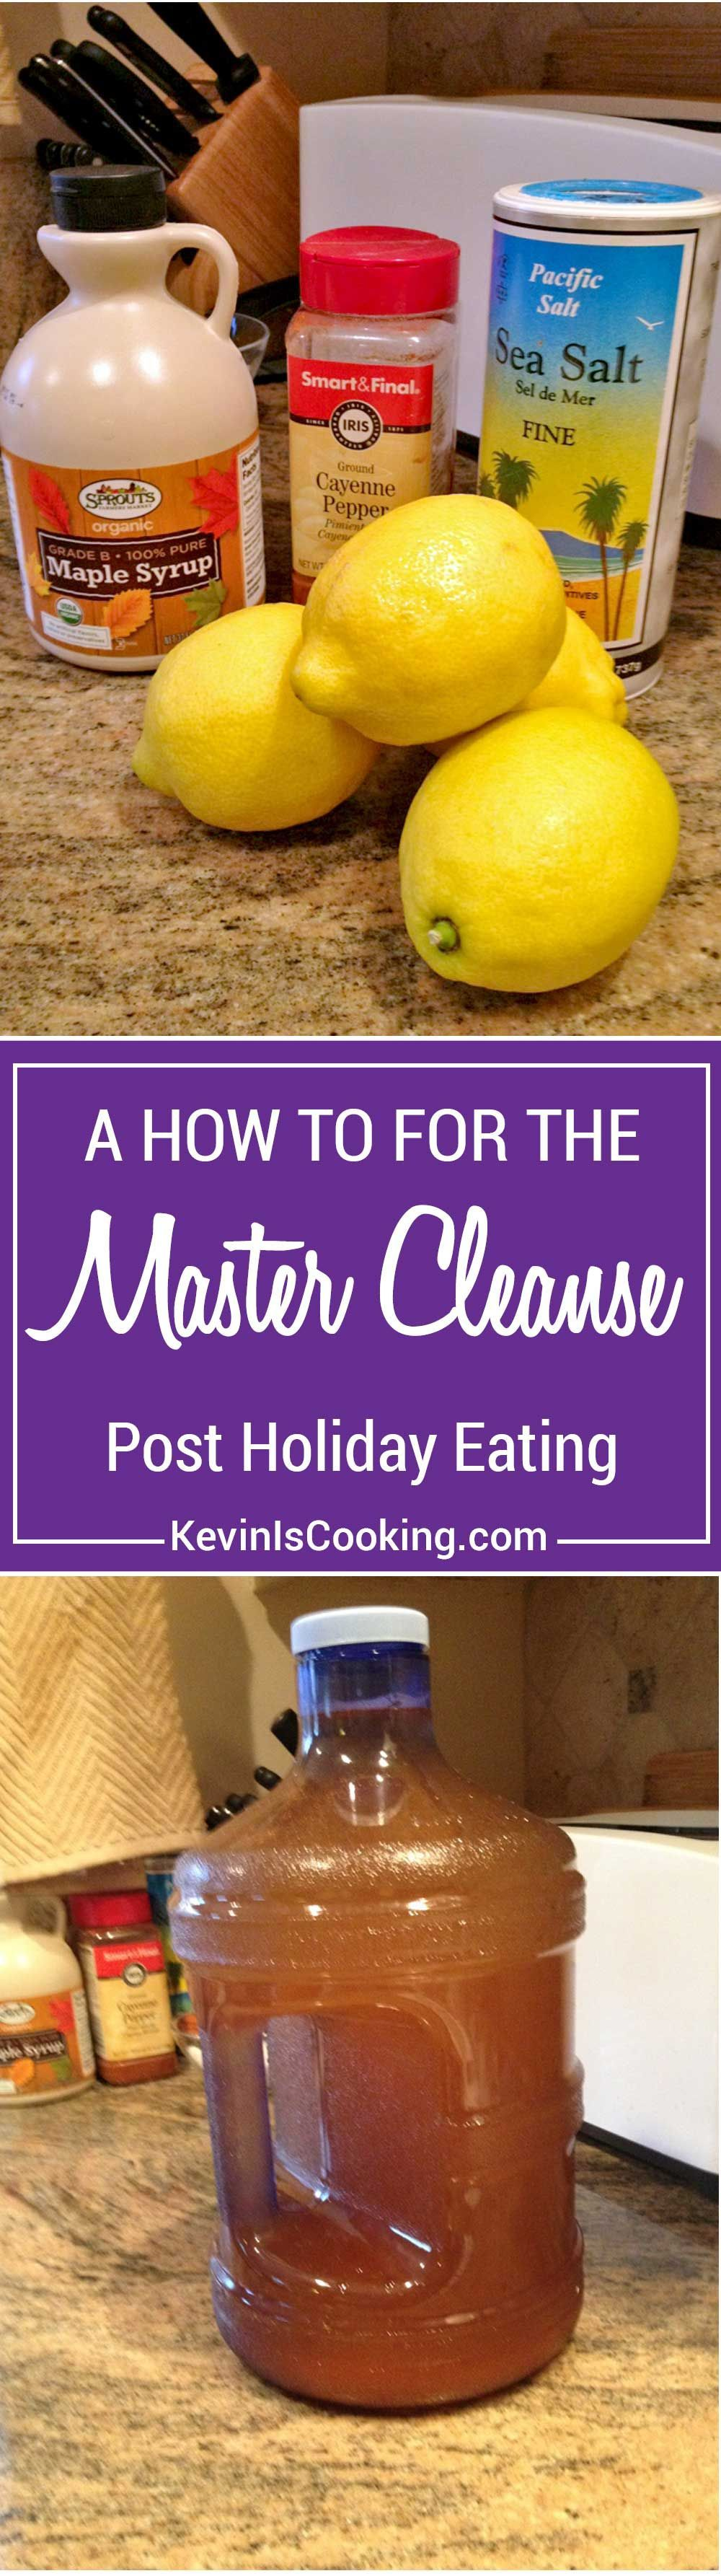 This How To for the Master Cleanse is better know as the